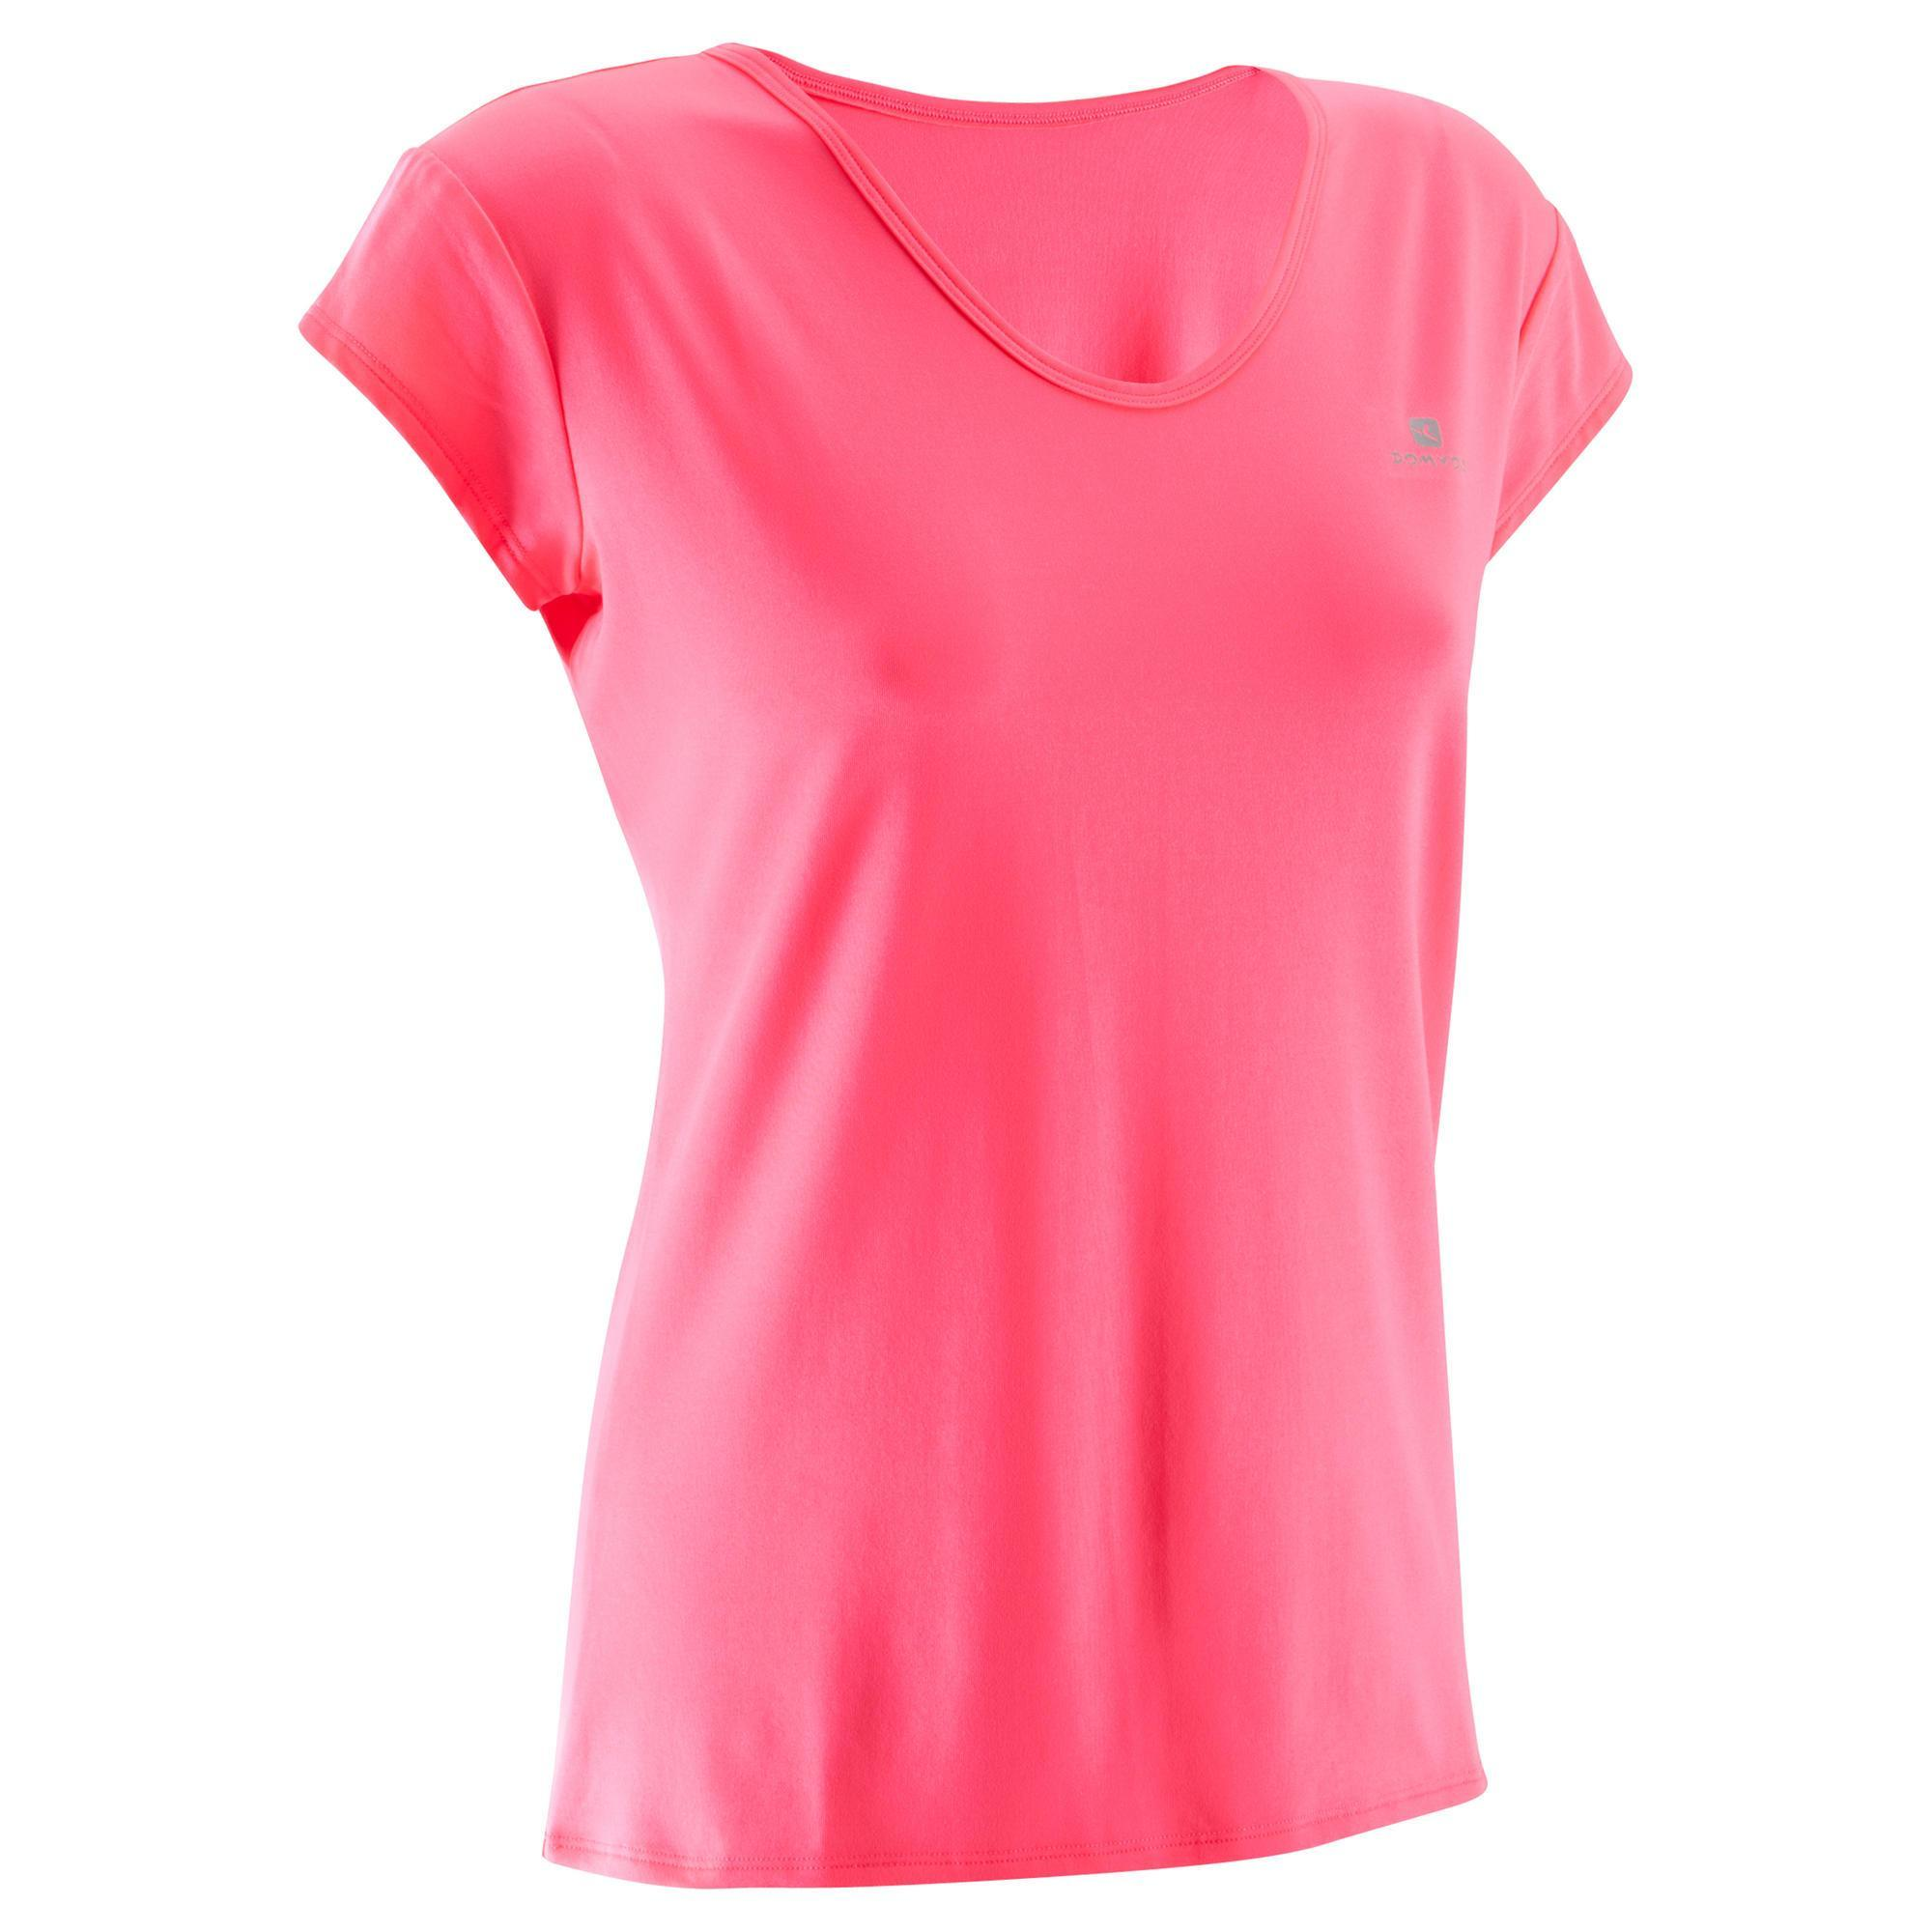 100 Women S Cardio Fitness T Shirt Neon Pink Domyos By Decathlon